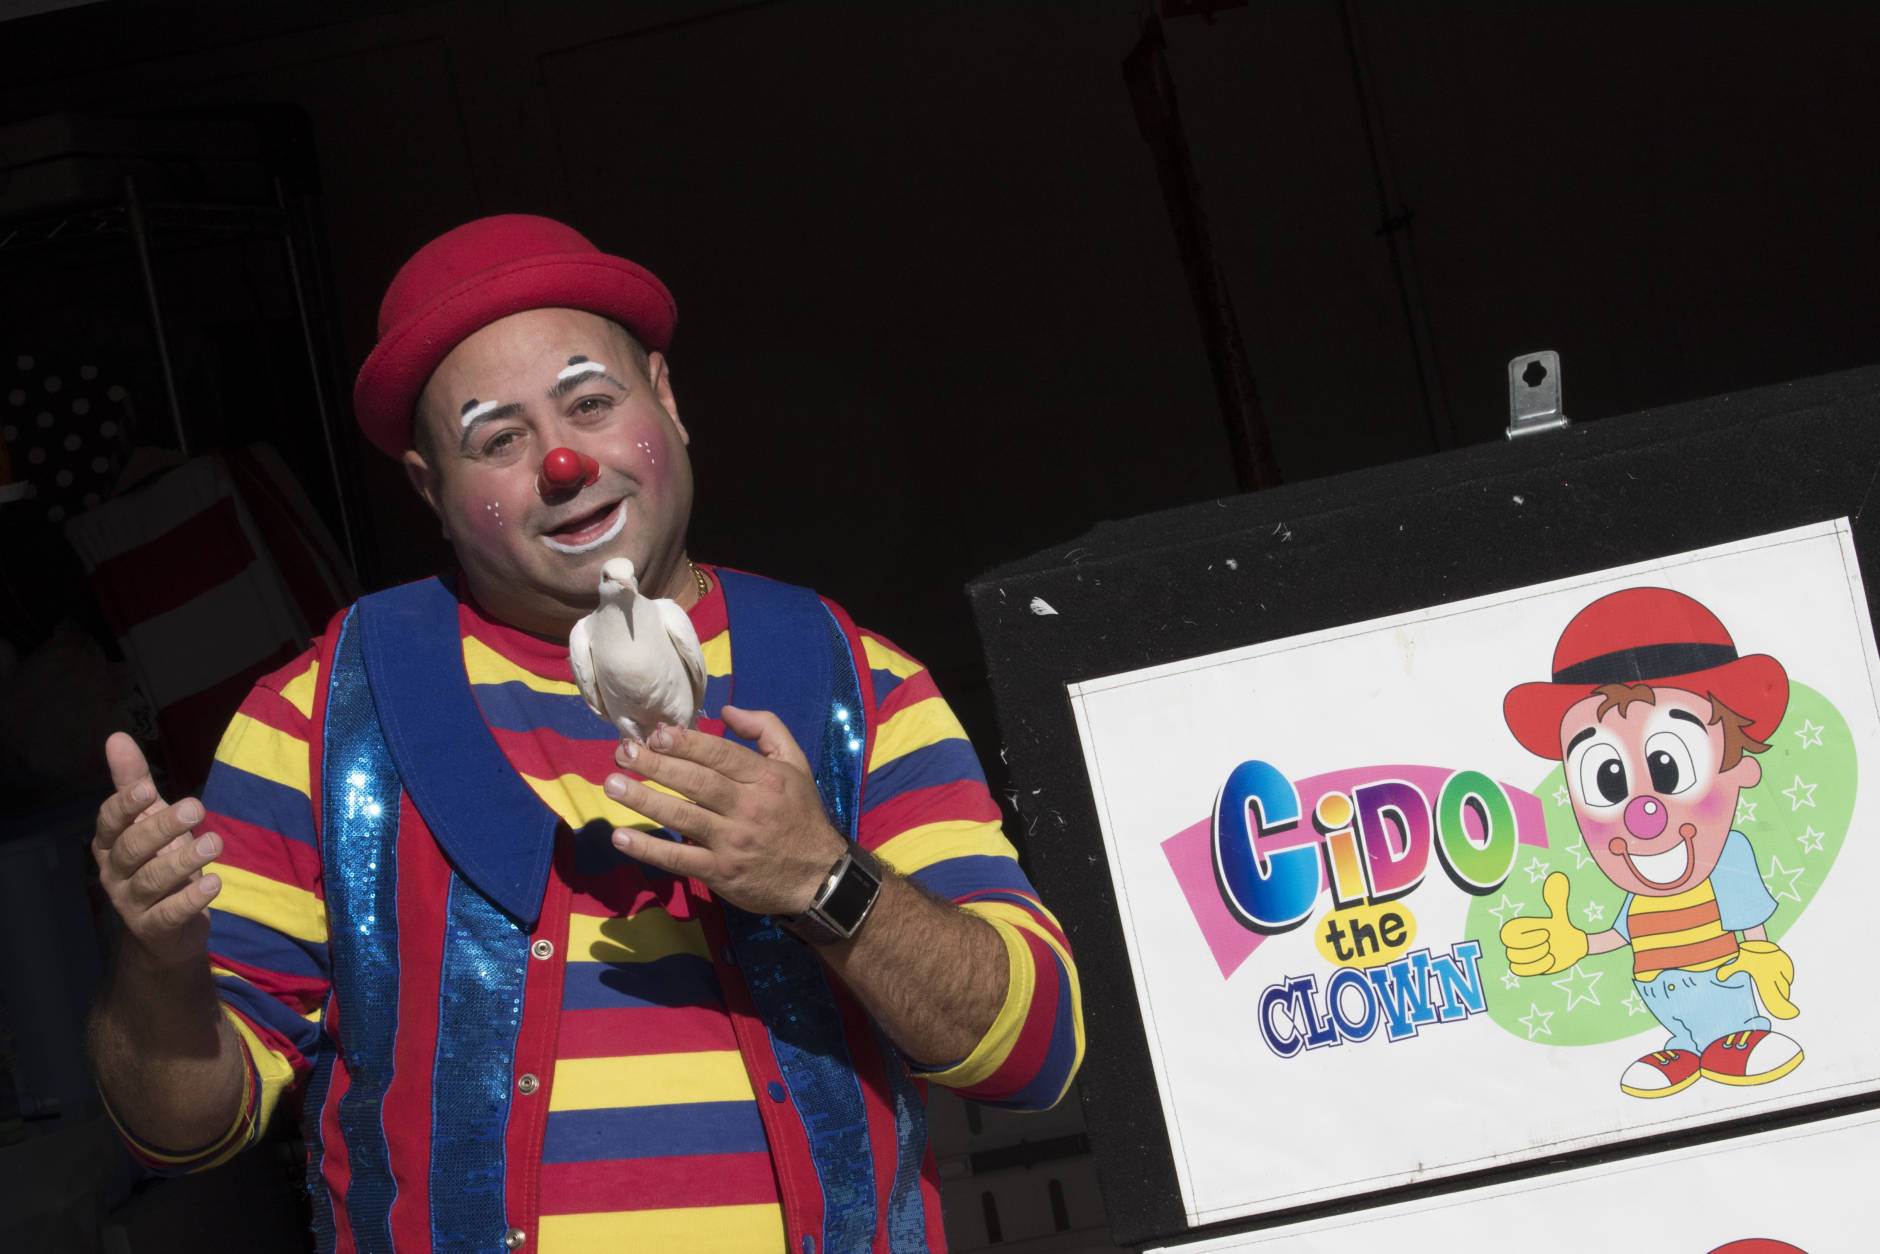 Cyrus Zaveih, also known as Cido the Clown, poses for a photo, Tuesday, Oct. 18, 2016. A spate of scares involving people doing menacing things while dressed in clown costumes has been no laughing matter for real clowns. Some clowns who perform at parties and other private events complain that bookings have fallen off amid creepy clown sightings, some of which have been revealed to be hoaxes. (AP Photo/Mary Altaffer)